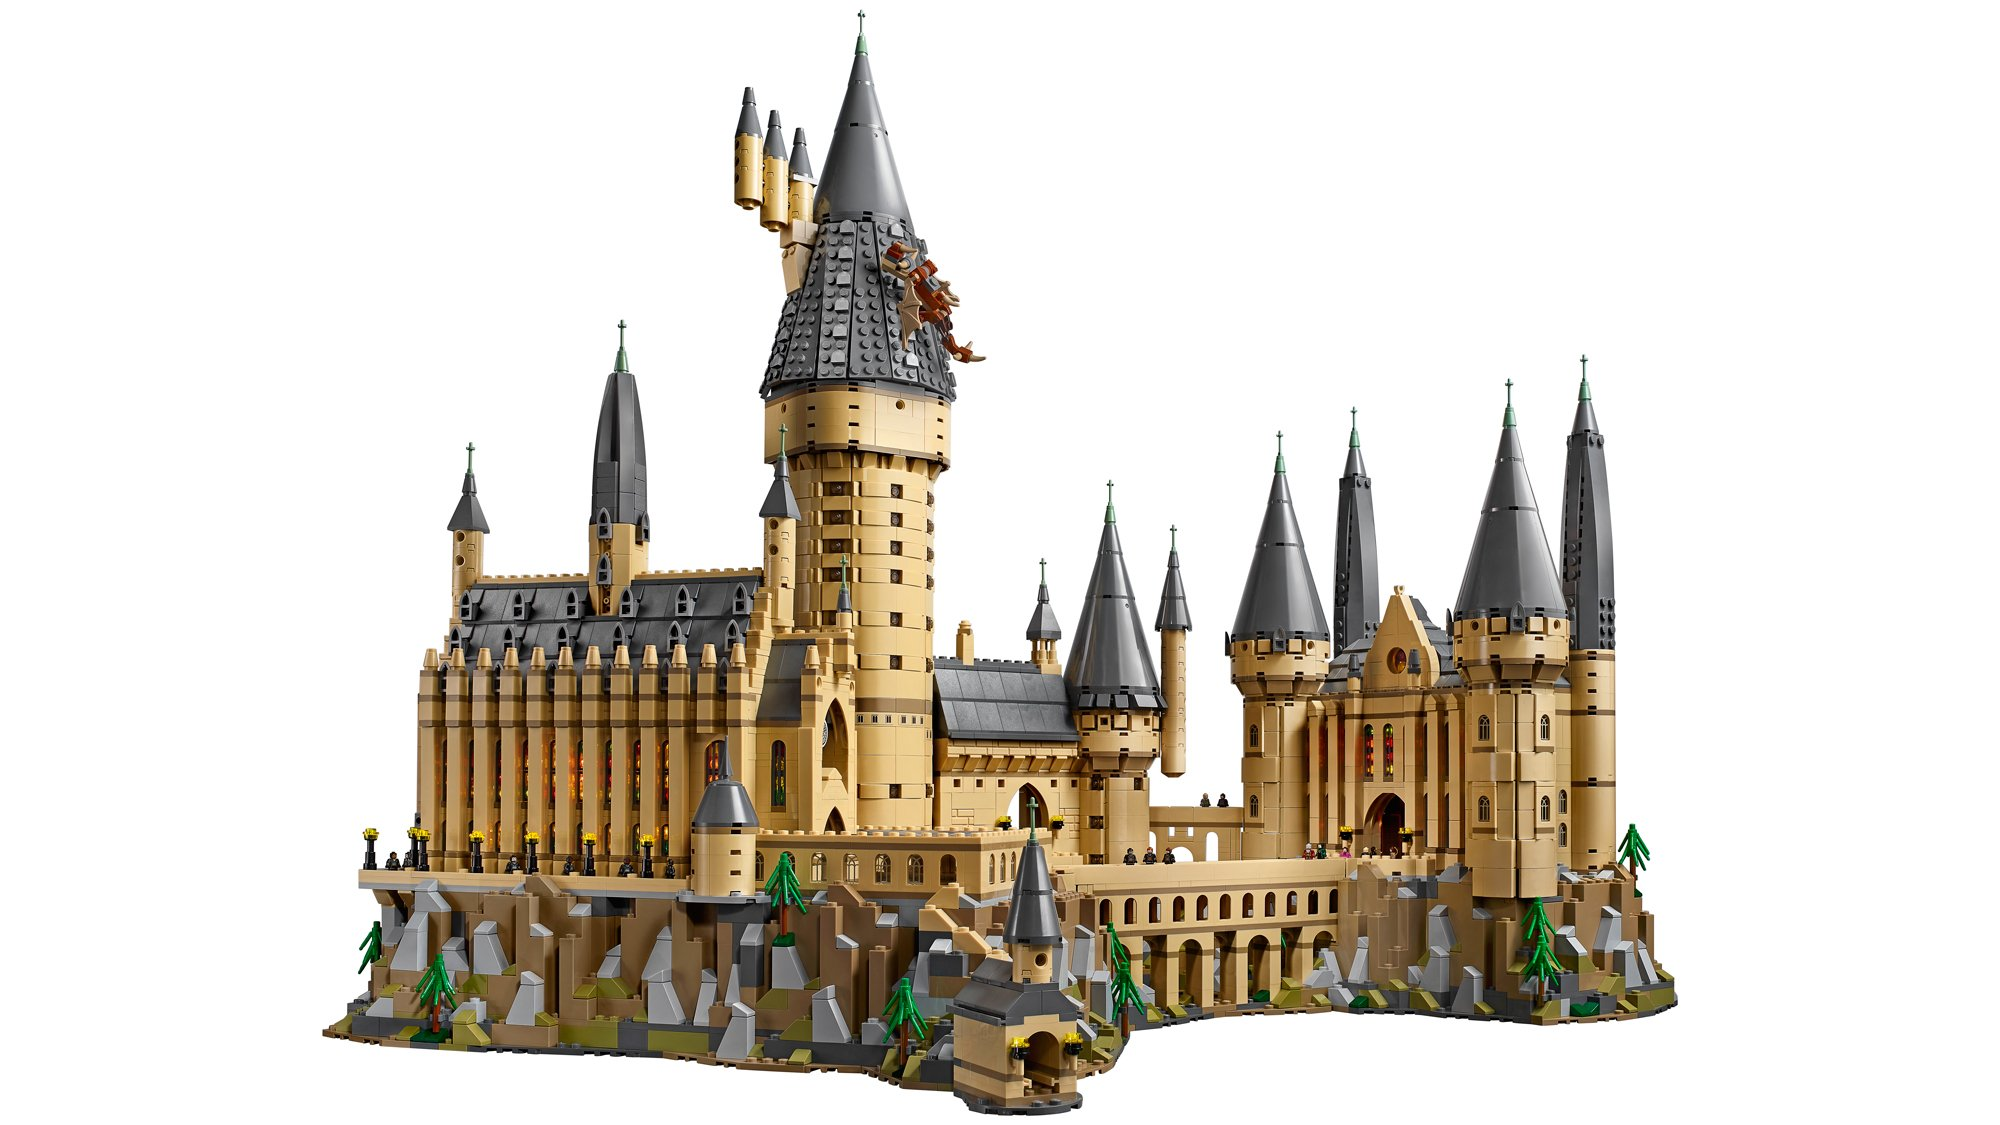 A 6,000 piece Lego Hogwarts Castle is 'the' gift for a Harry Potter fan